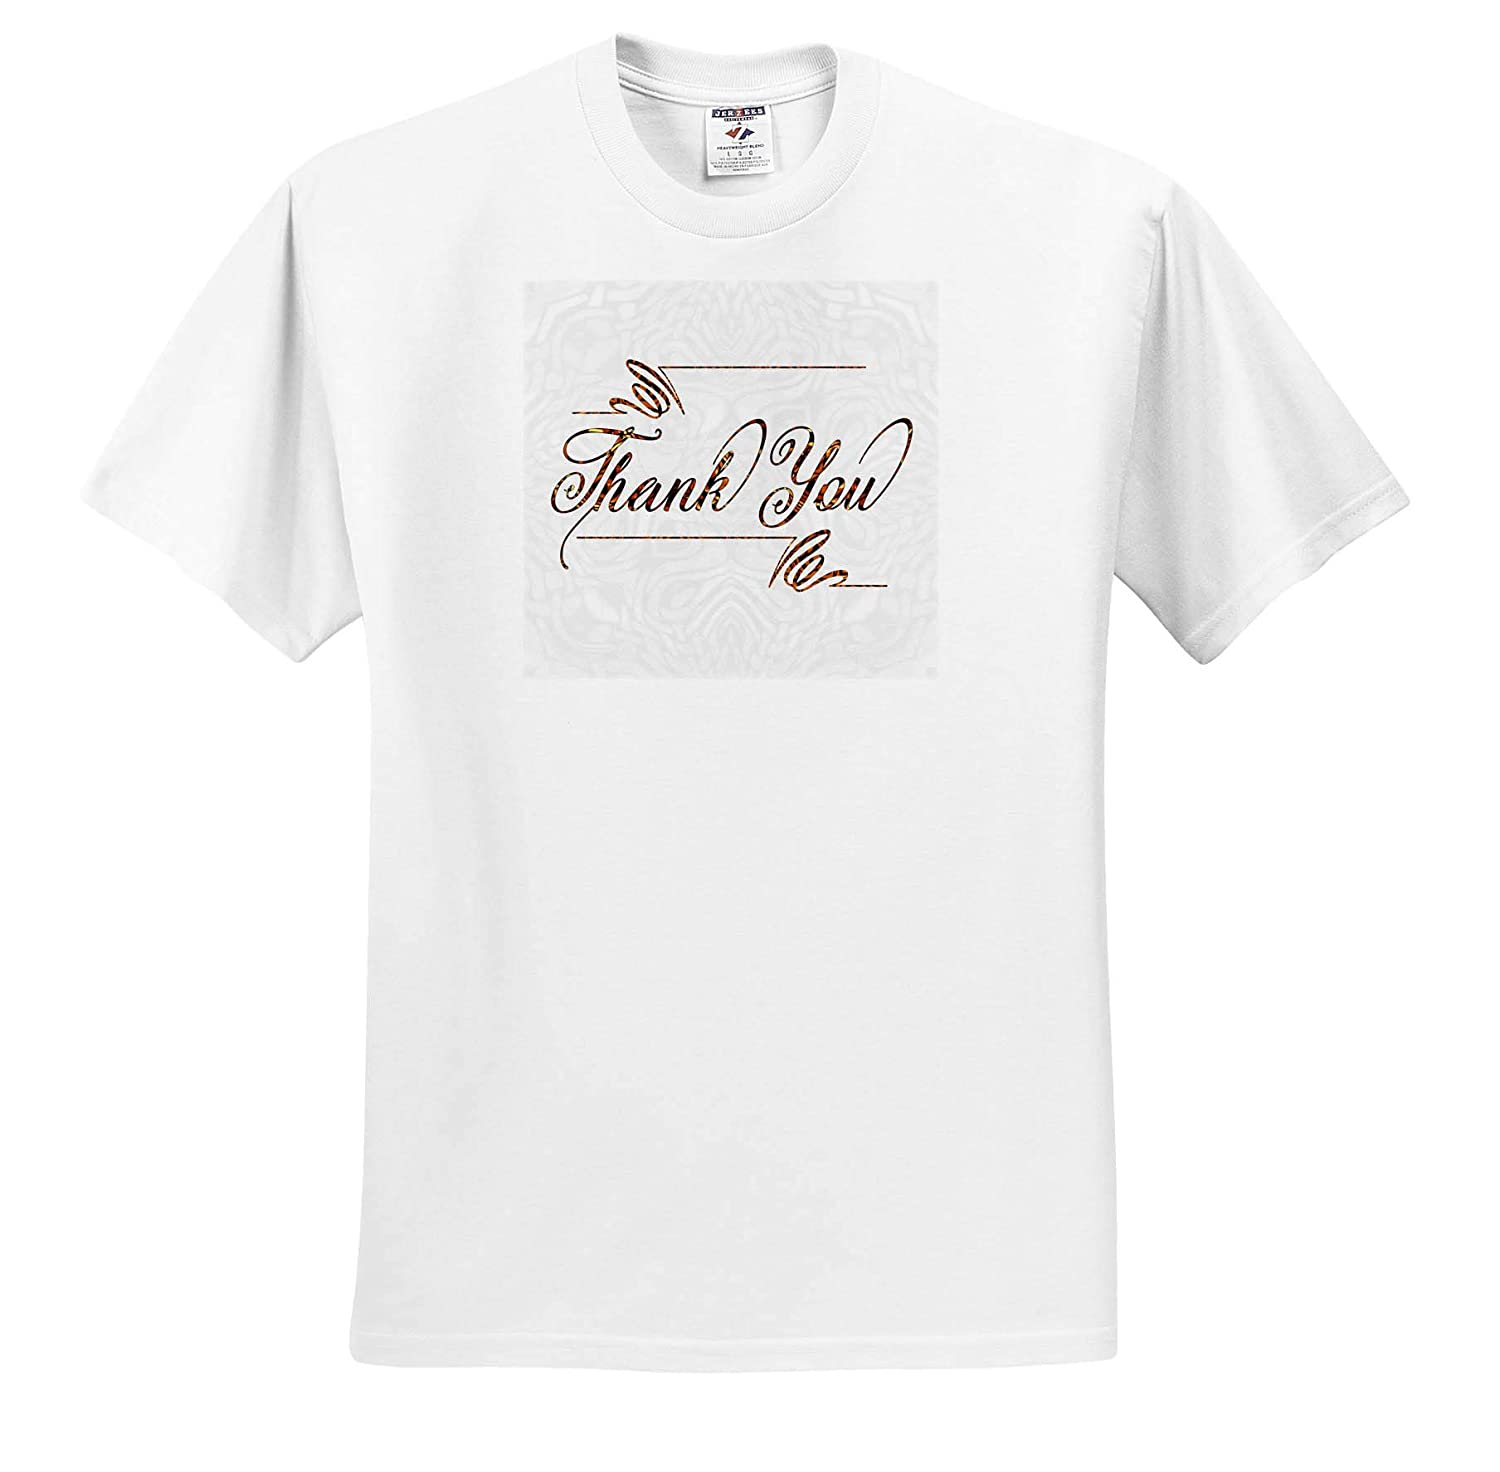 Adult T-Shirt XL 3dRose Doreen Erhardt Sentiments ts/_319575 Bold Thank You Typography in Shades of Brown Tribal Pattern